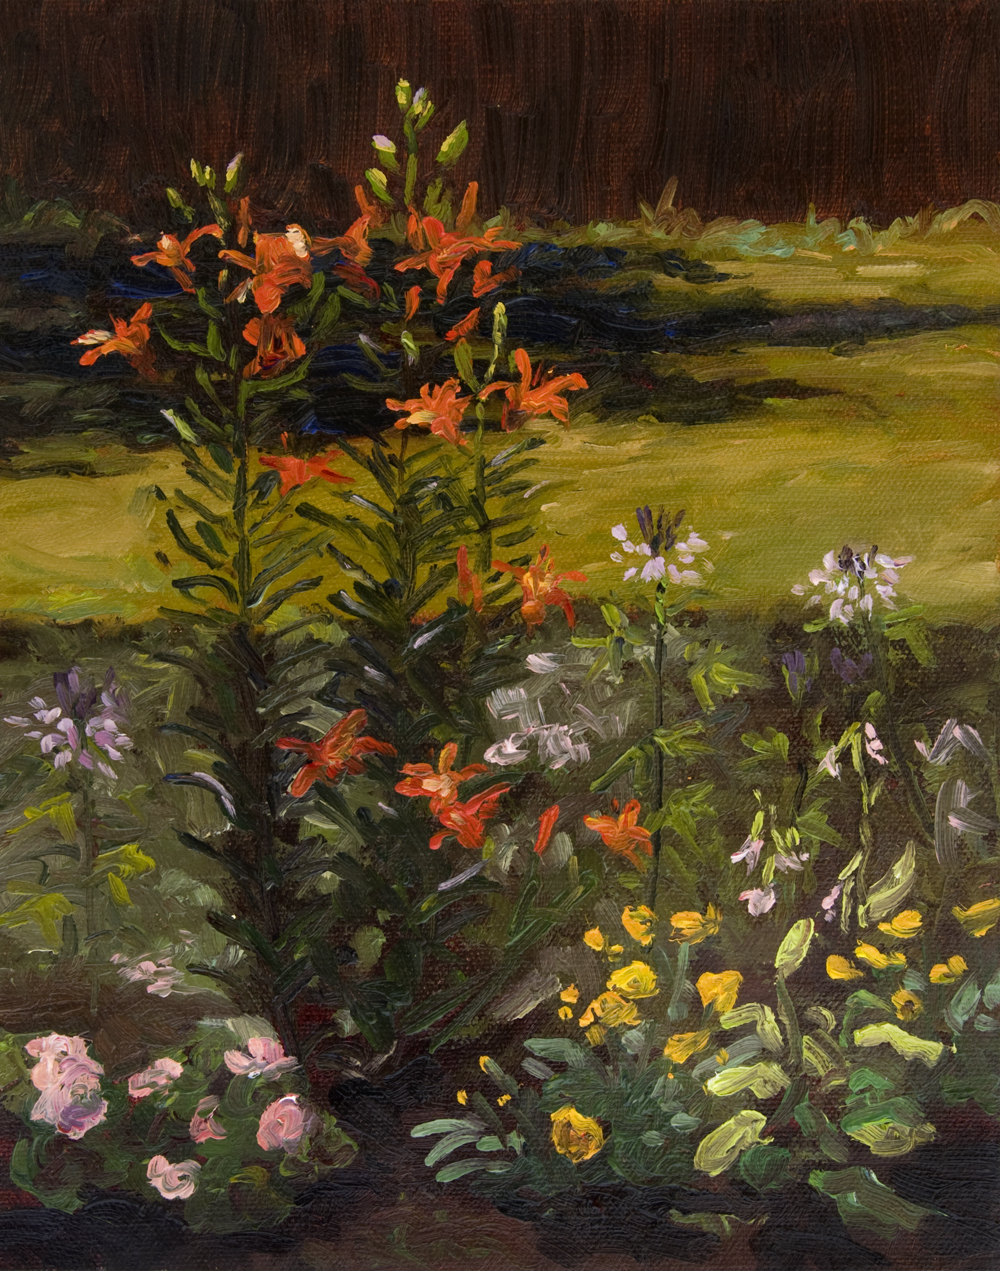 Lilies and Cleome